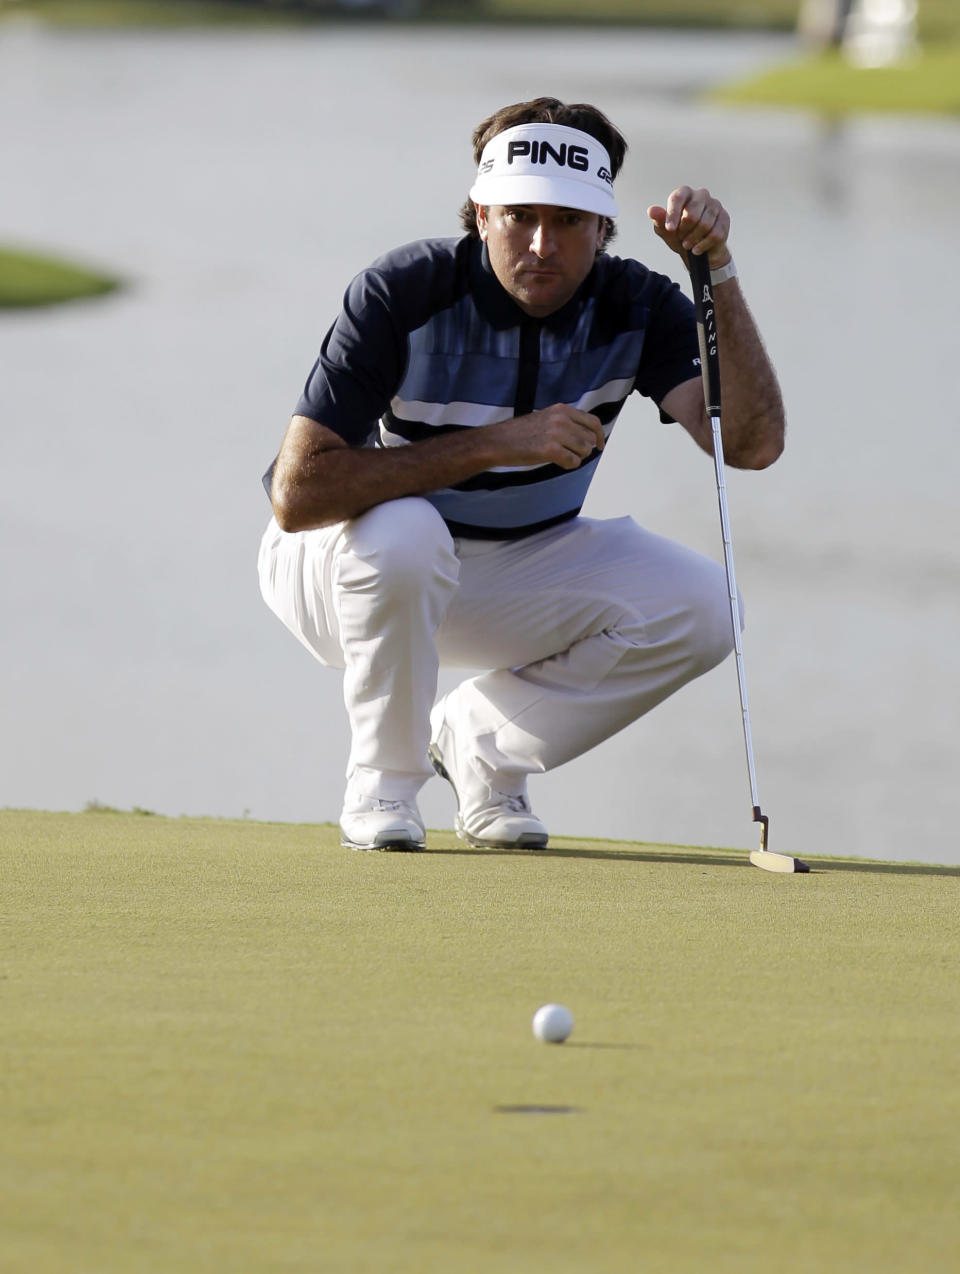 Bubba Watson looks at his shot on the 18th green during the final round of the Cadillac Championship golf tournament Sunday, March 9, 2014, in Doral, Fla. (AP Photo/Luis Alvarez)